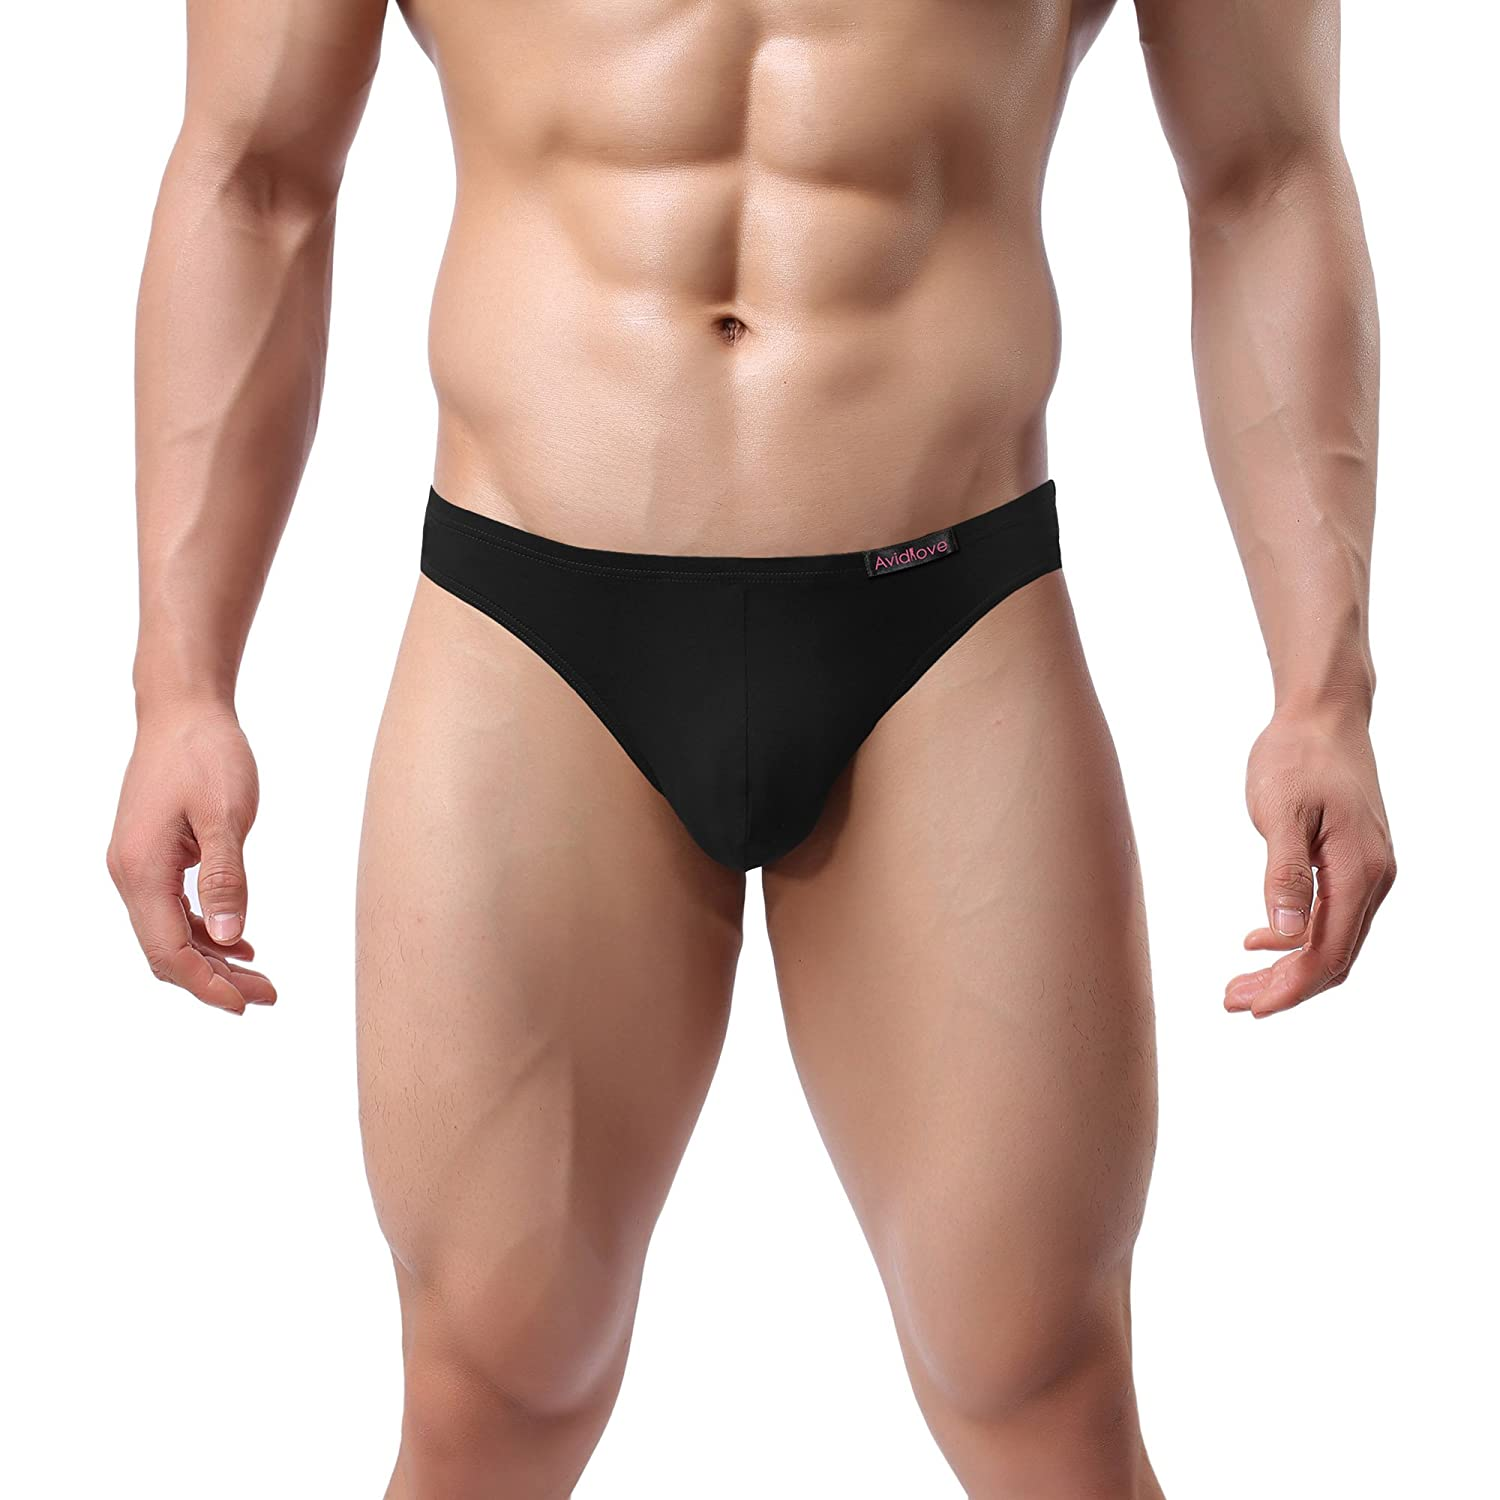 Avidlove Men Underwear Micromodal Bikinis 4 Pack Briefs at Amazon ...